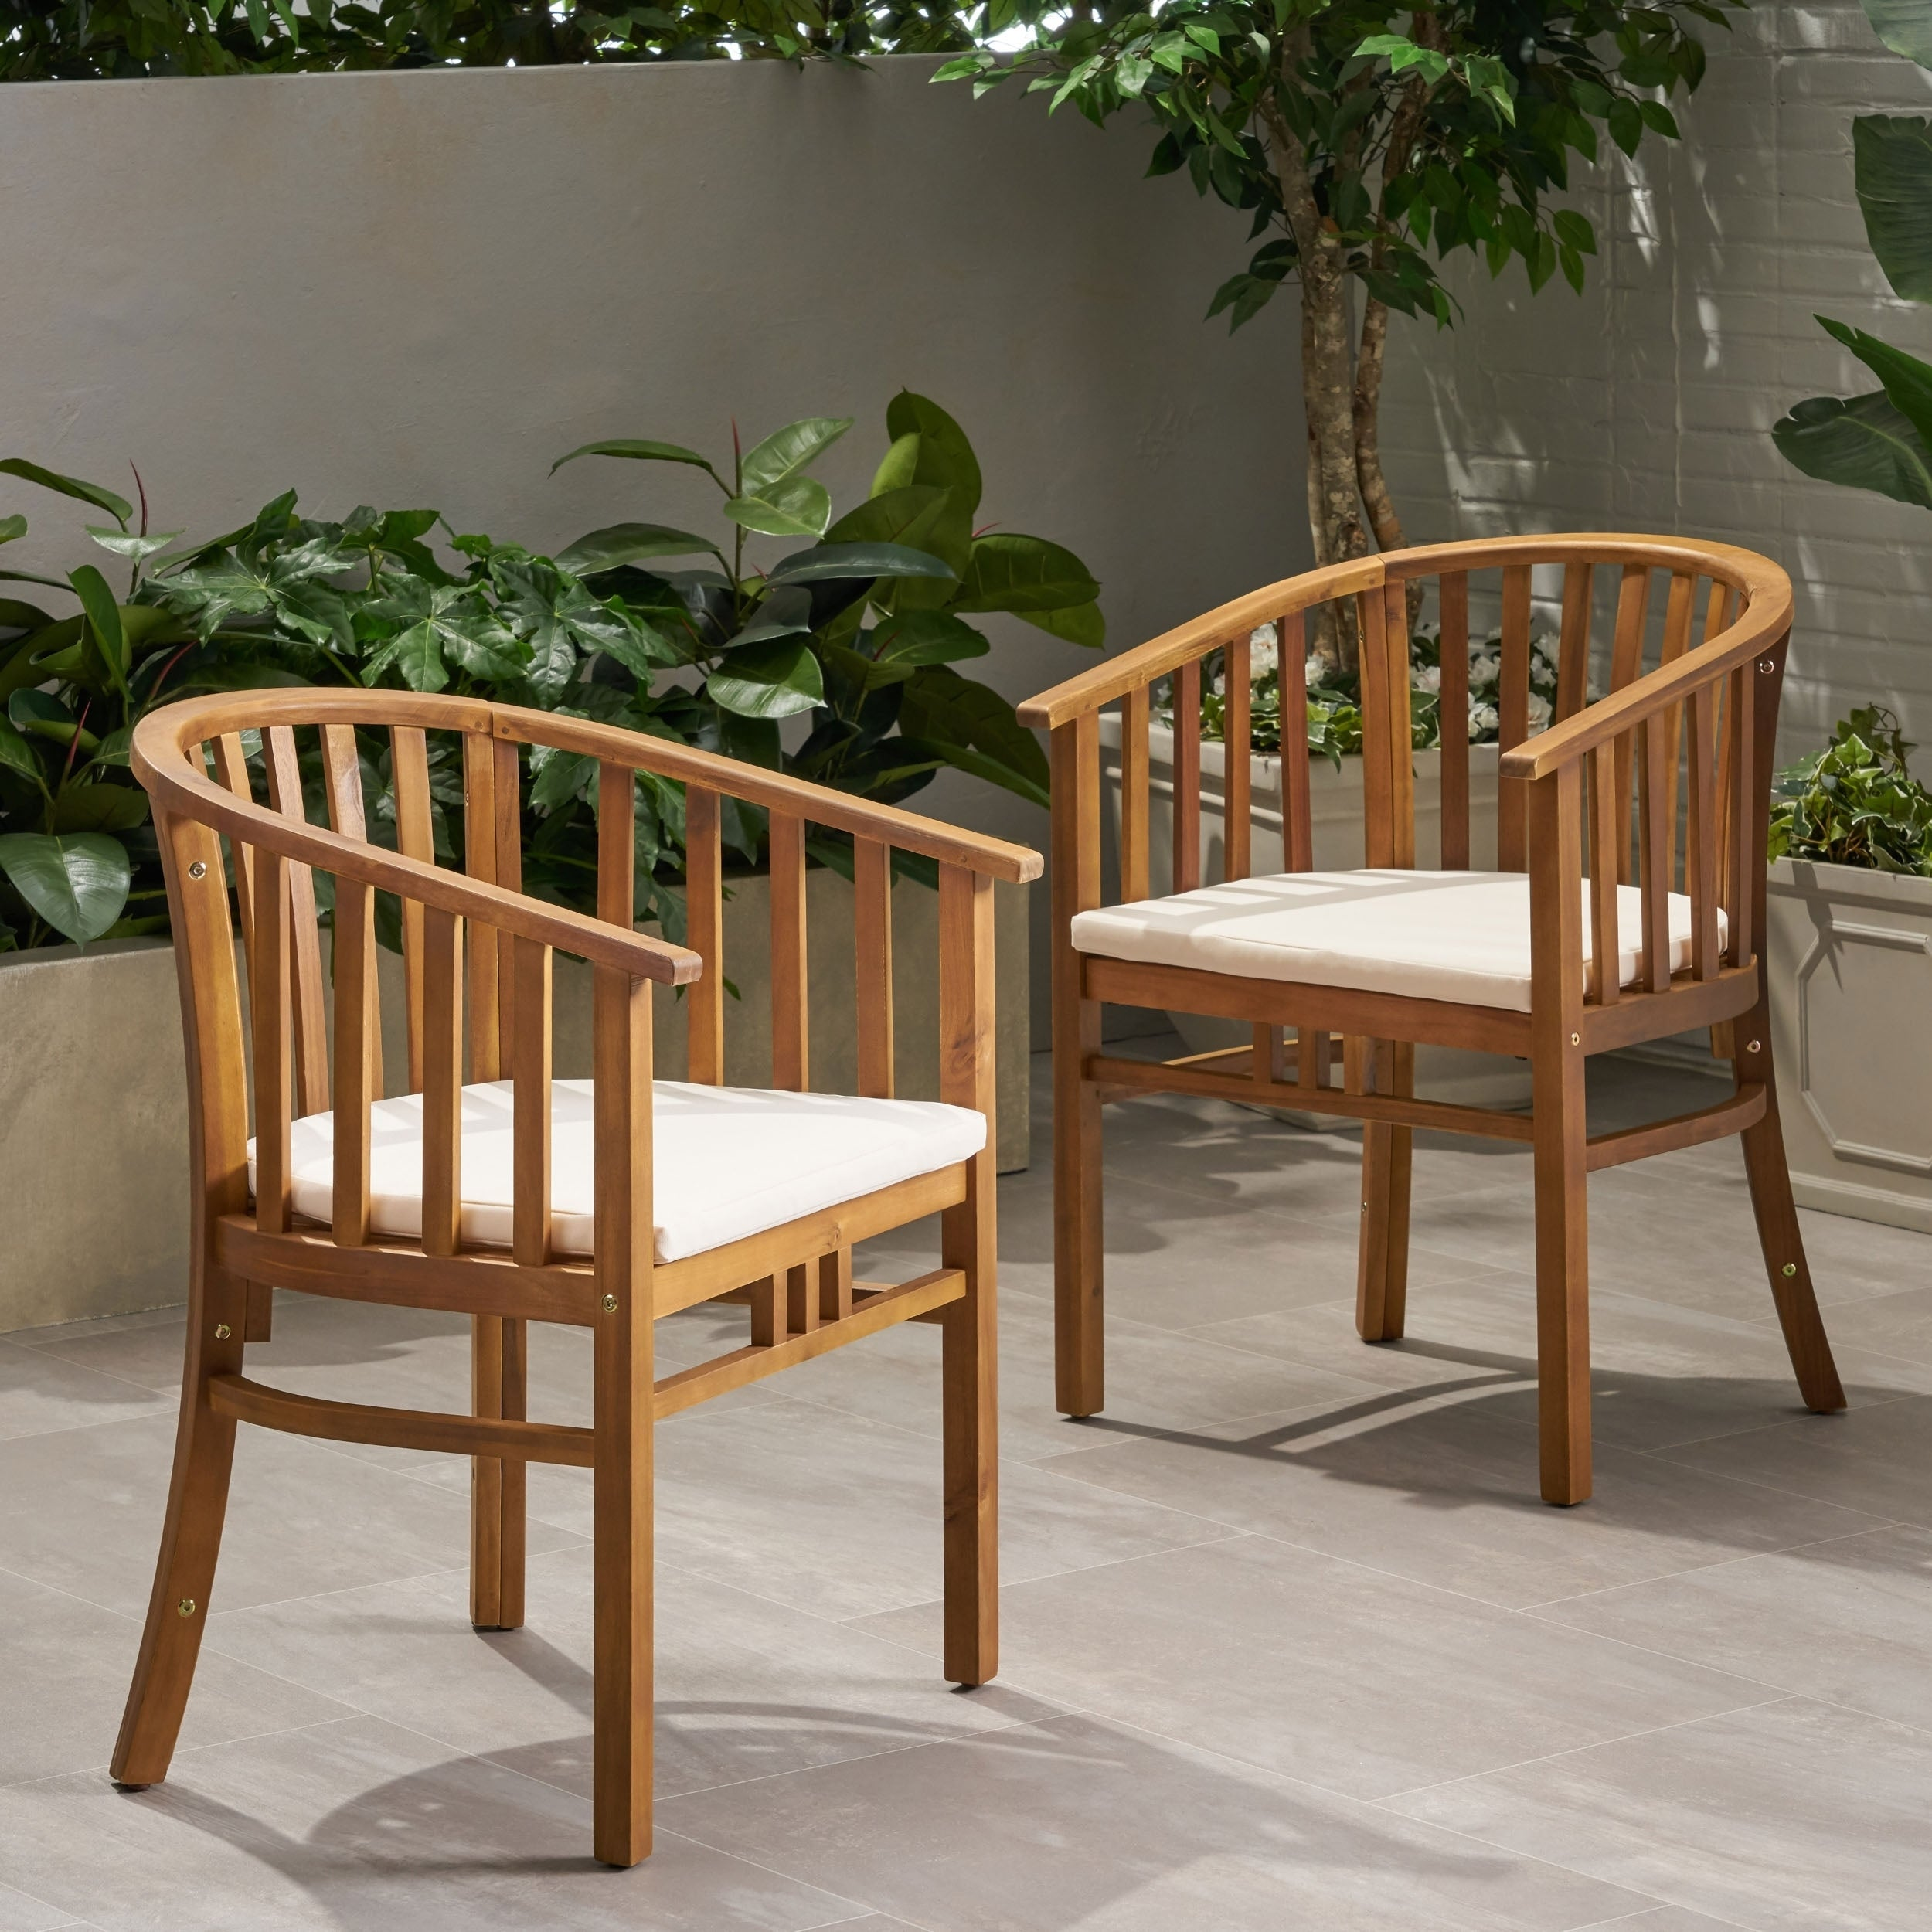 Alondra Outdoor Wooden Dining Chairs With Cushions Set Of 2 By Christopher Knight Home